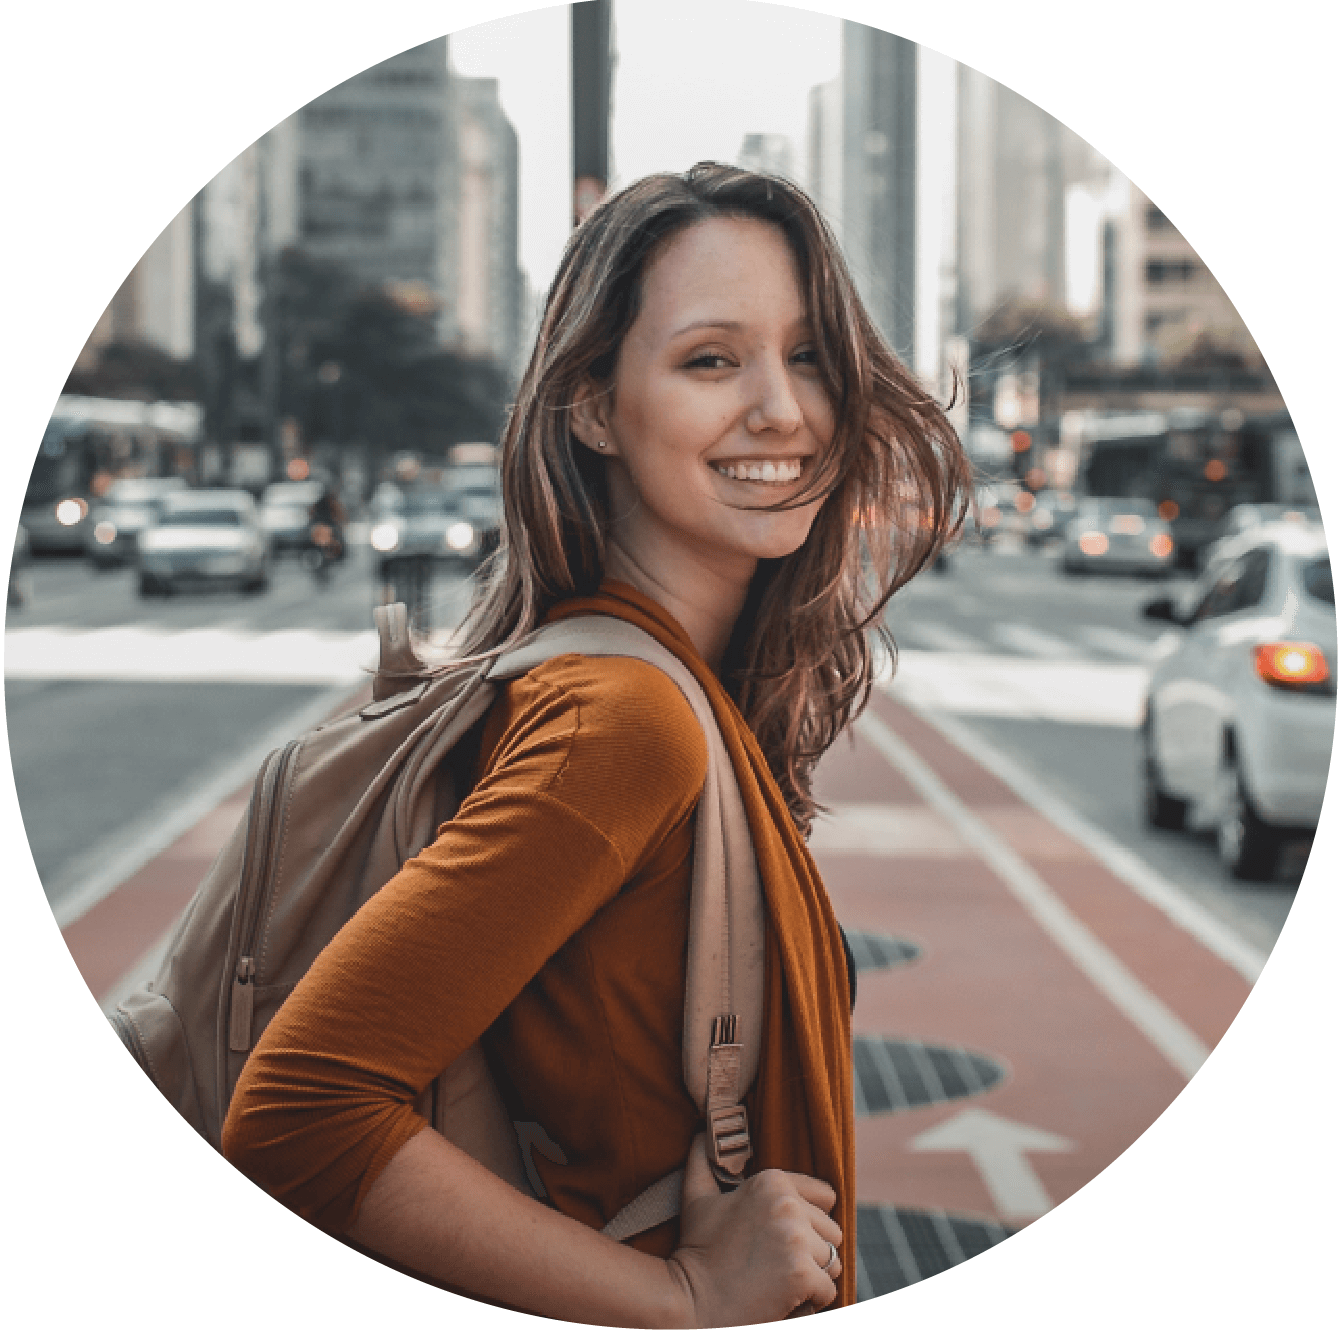 """Sabrina: The Spontaneous Adventurer - """"I love the freedom of traveling on my own, but am sometimes discouraged from doing certain activities alone."""""""